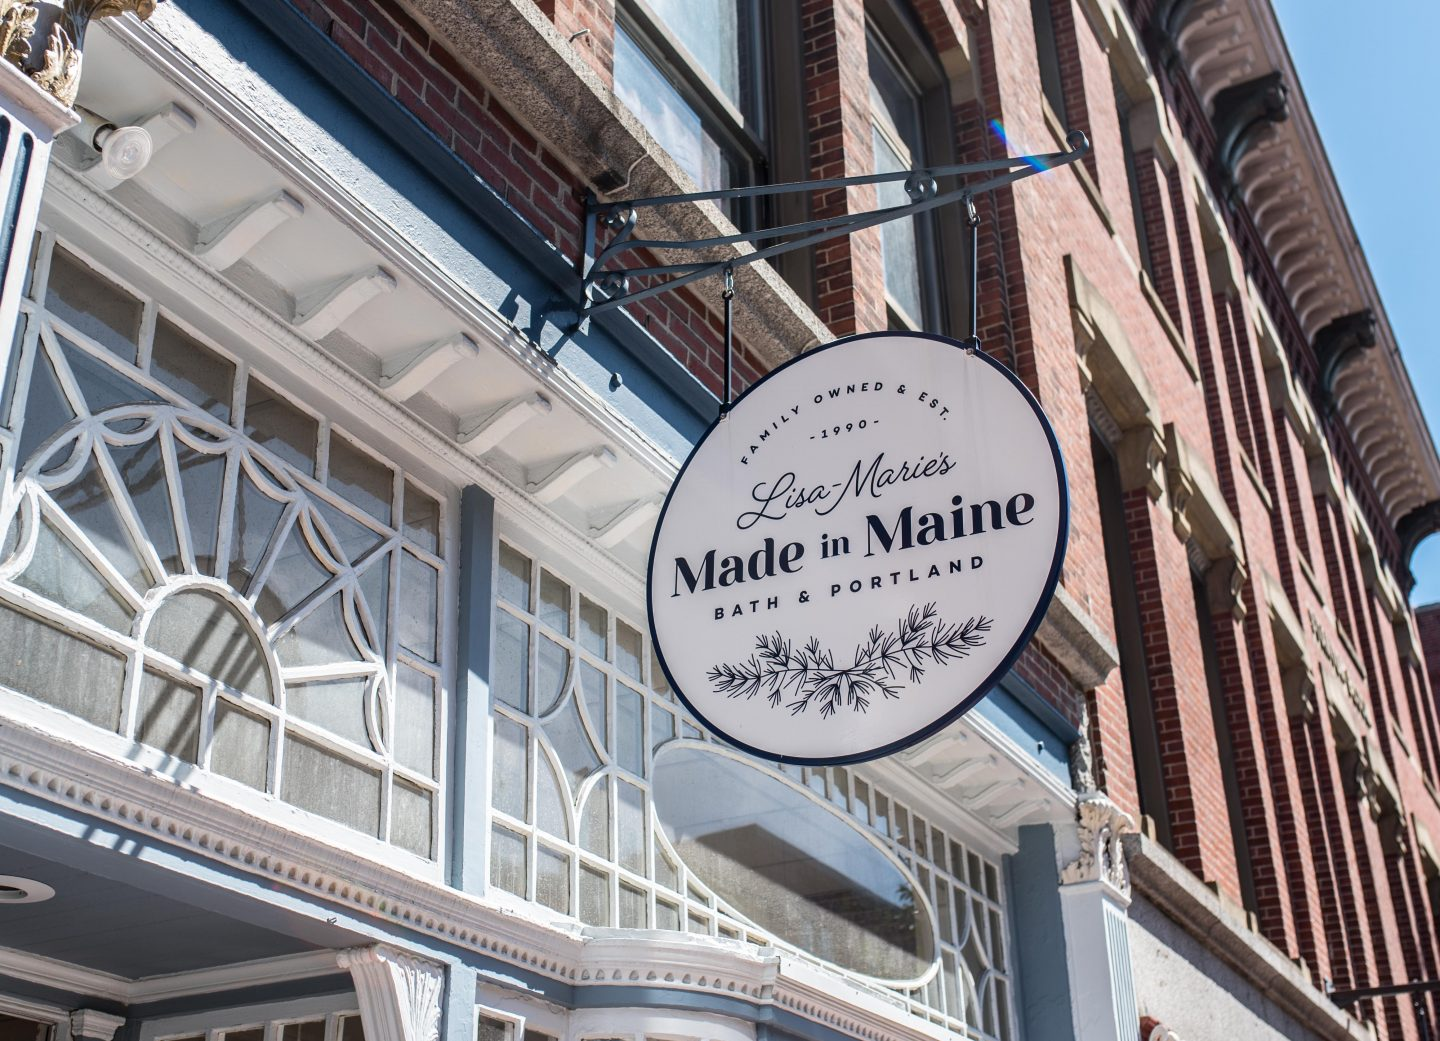 Lisa-Marie's Made in Maine storefront